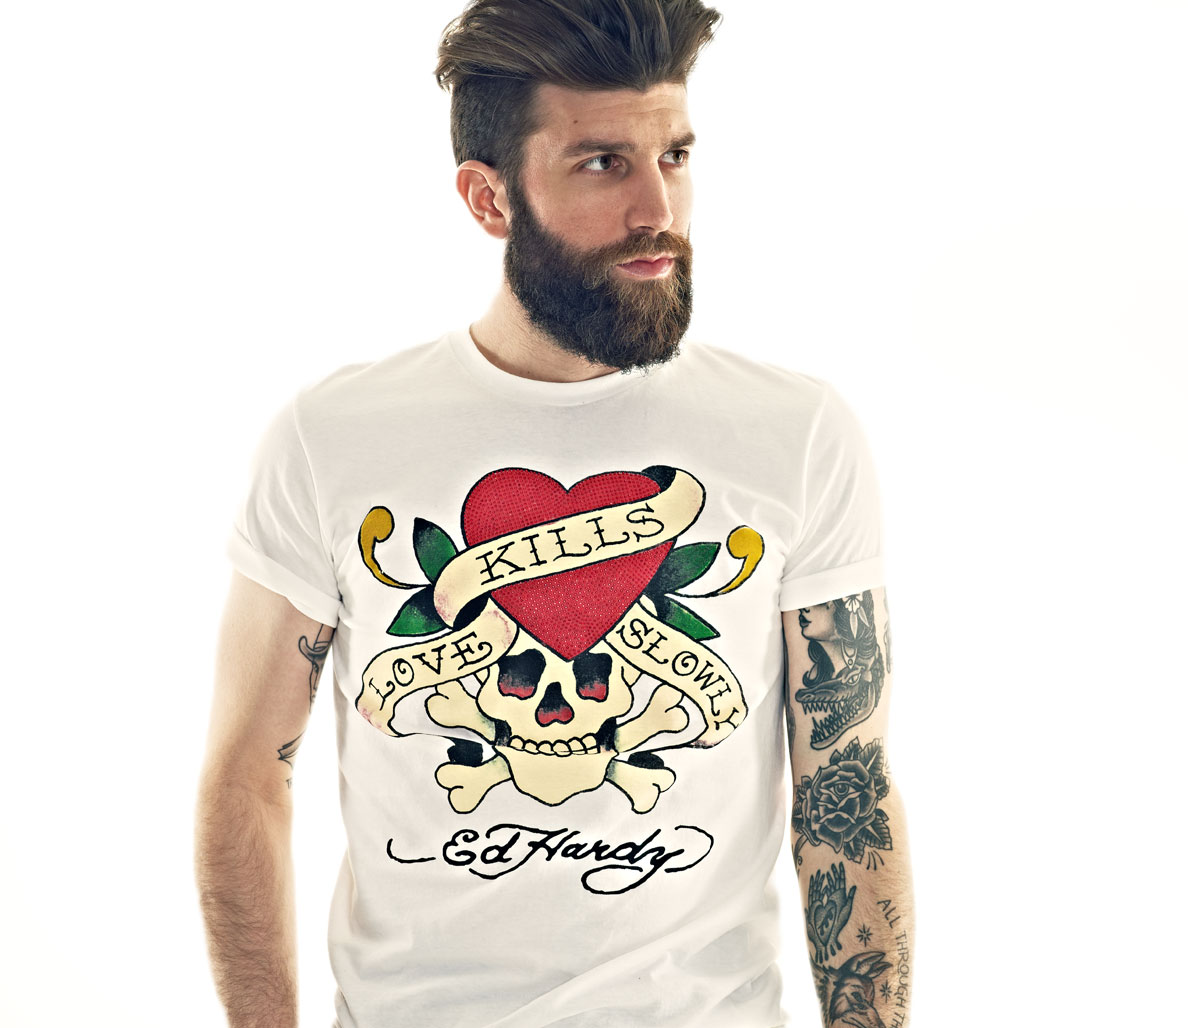 Top 6 Graphic T-Shirts From Ed Hardy. 7. by MEN'S FITNESS Editors